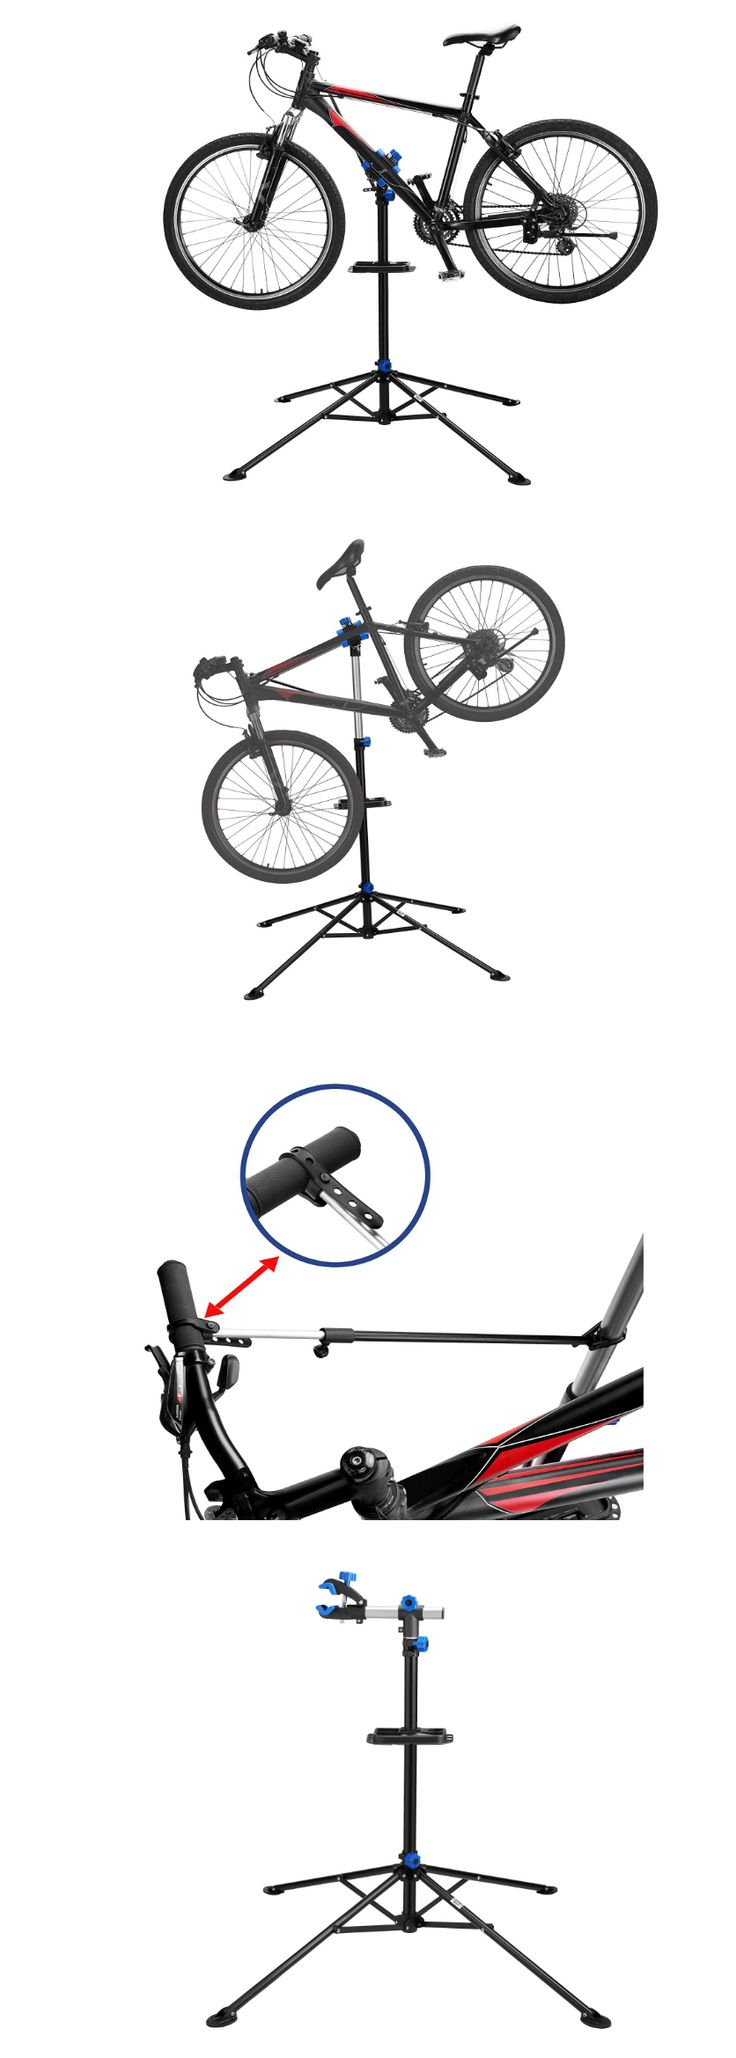 Workstands 177847: Bike Repair Stand Clamp Mountain Racing Adjustable Tool Tray Rotating Heavy Duty BUY IT NOW ONLY: $79.99